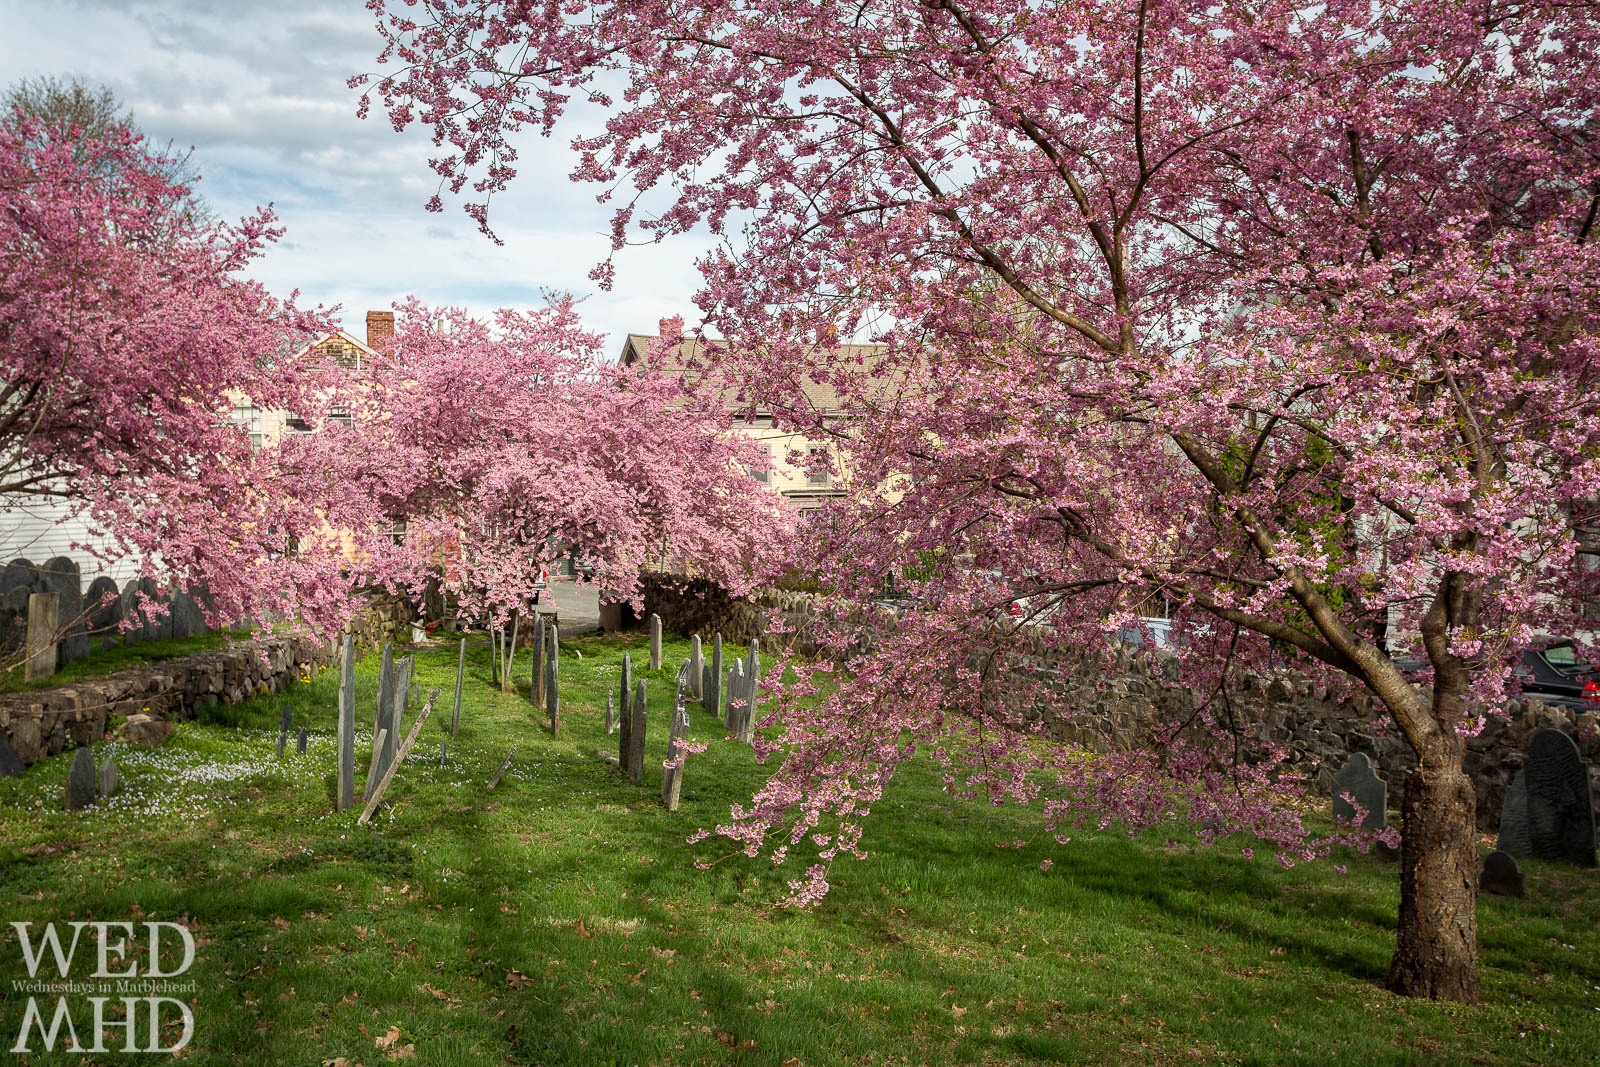 Remembering the blossoms at the Harris Street Cemetery during this Spring without flowers